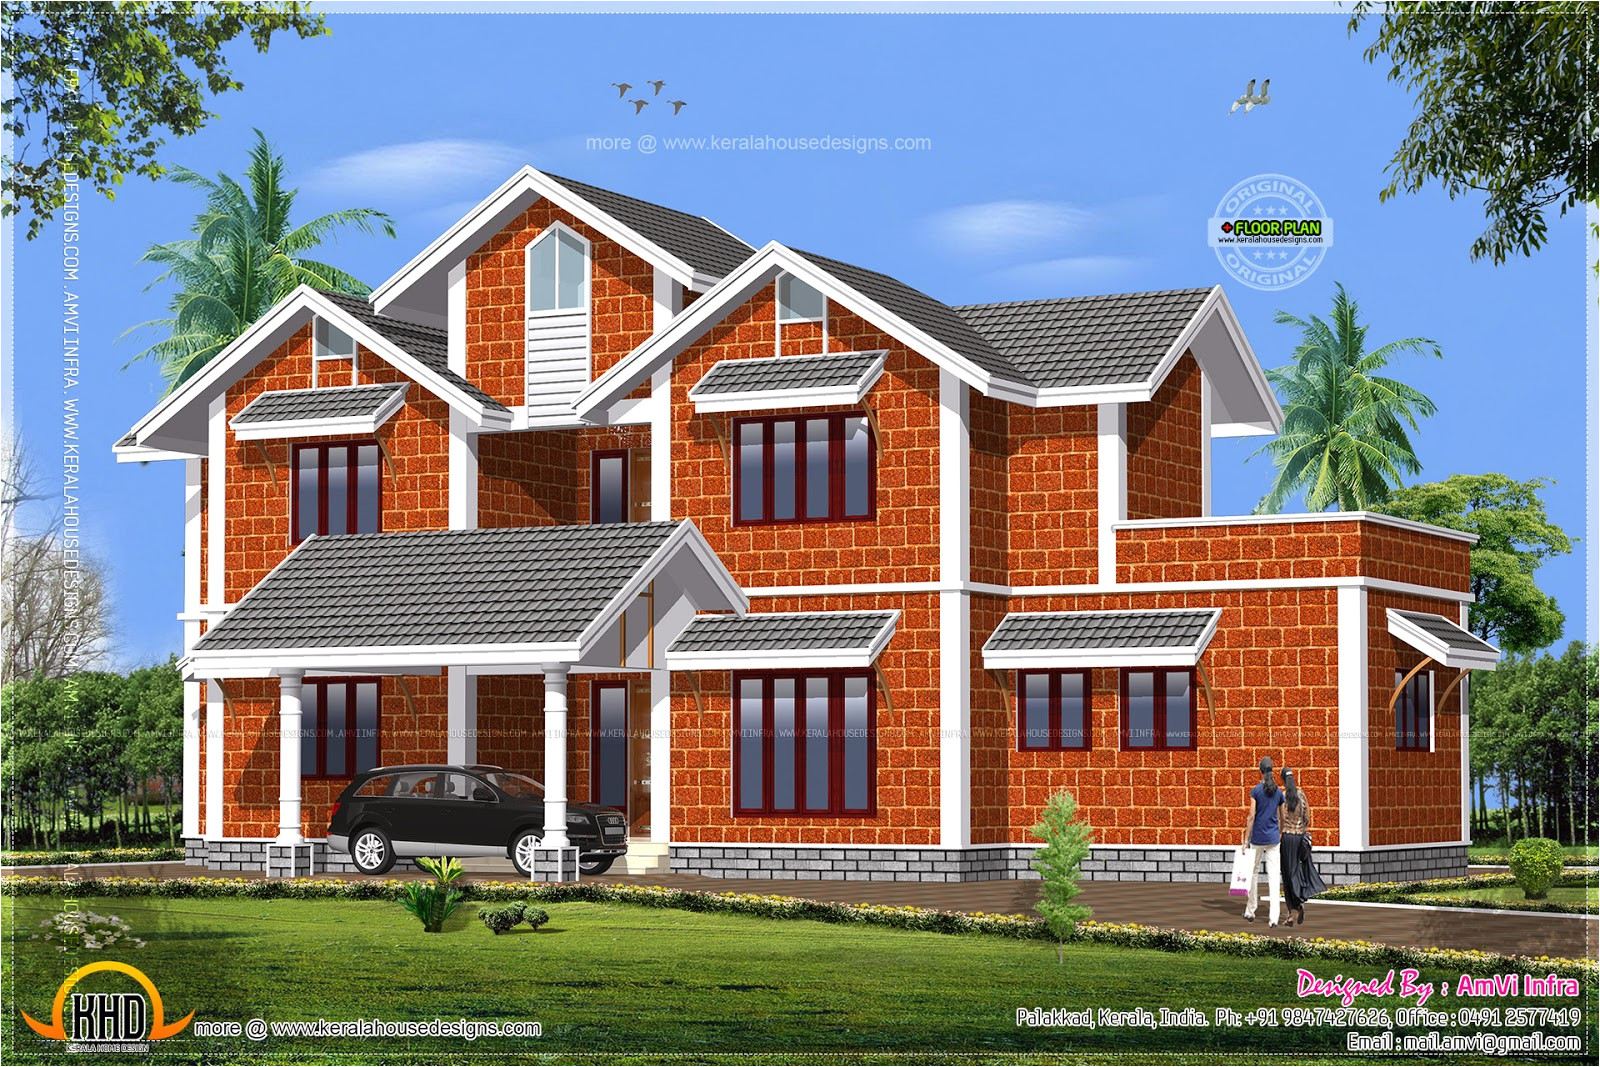 house made of laterite stone